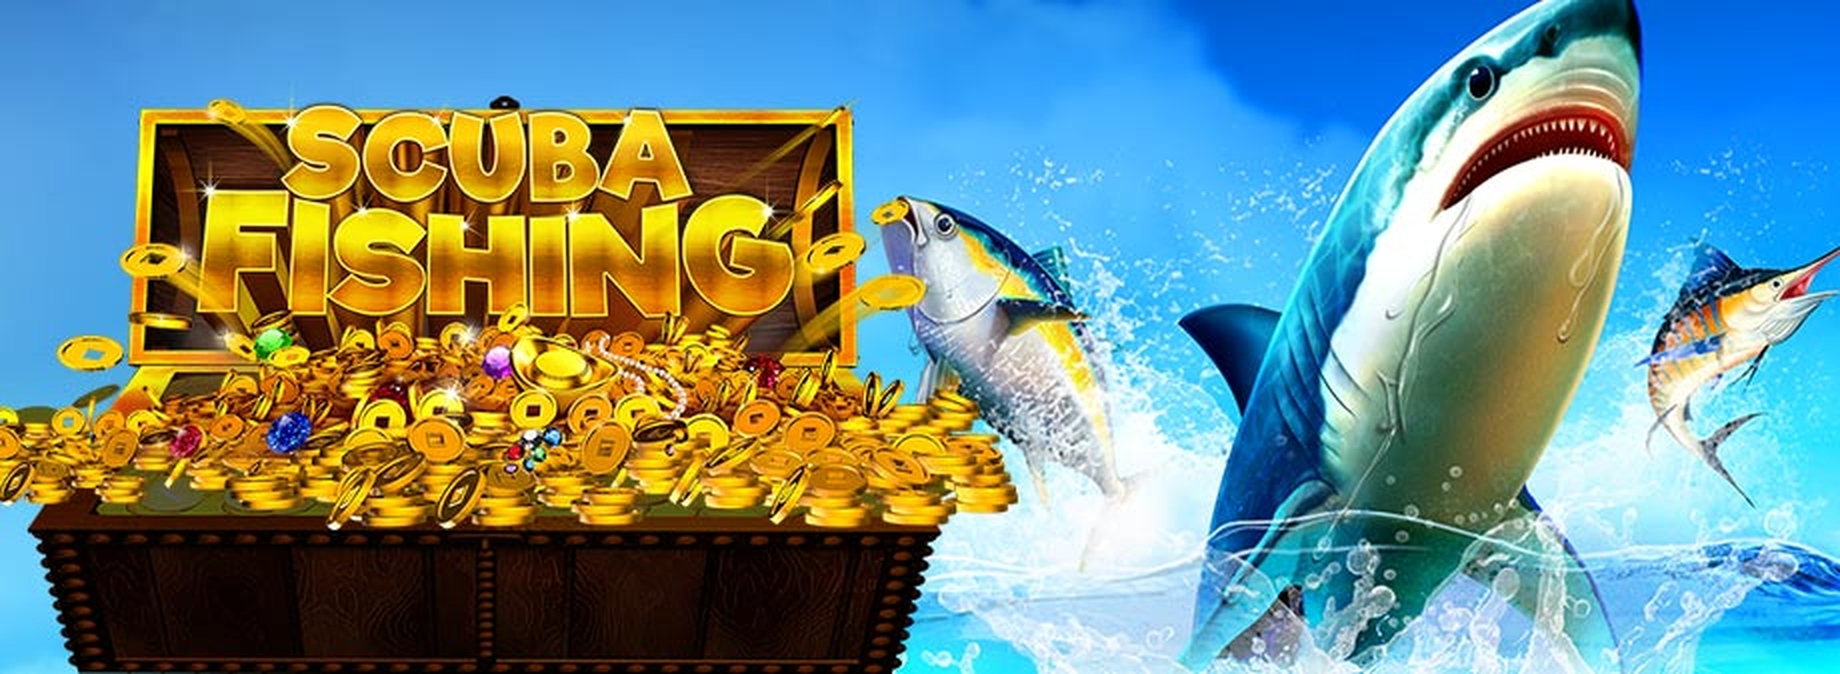 The Scuba Fishing Online Slot Demo Game by Real Time Gaming